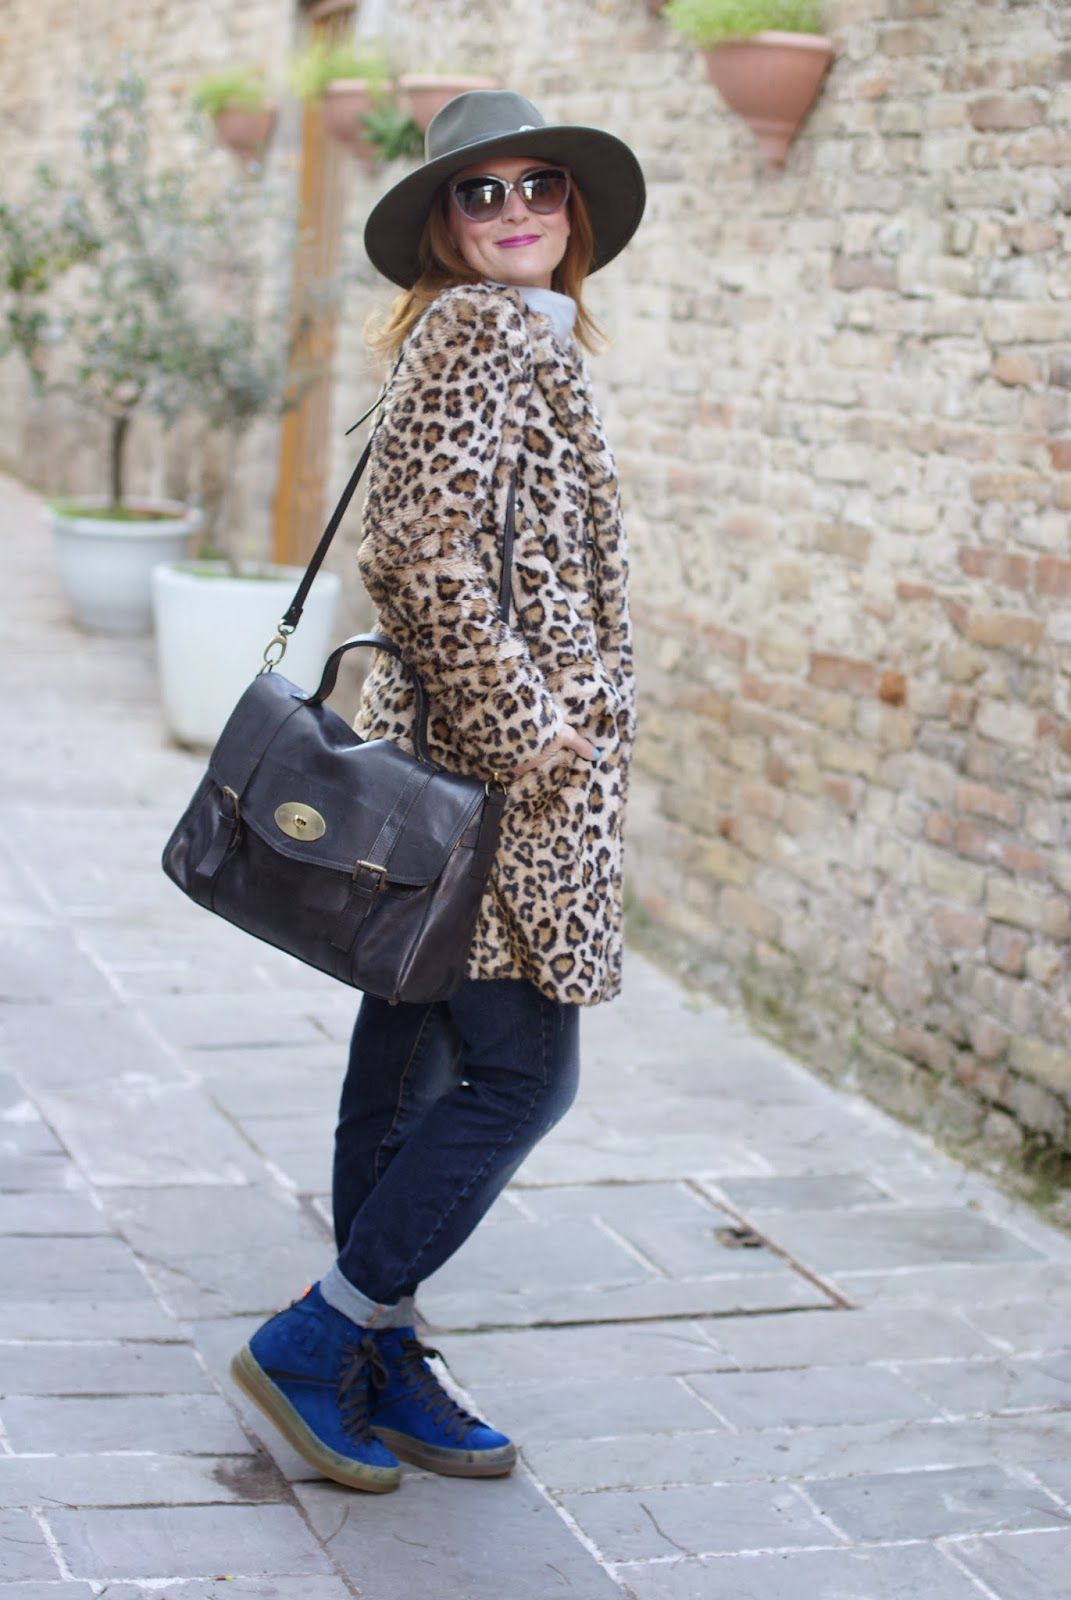 leopard faux fur coat, cobalt blue sneakers, Ecua-Andino australian hat, satchel bag, Fashion and Cookies, fashion blogger